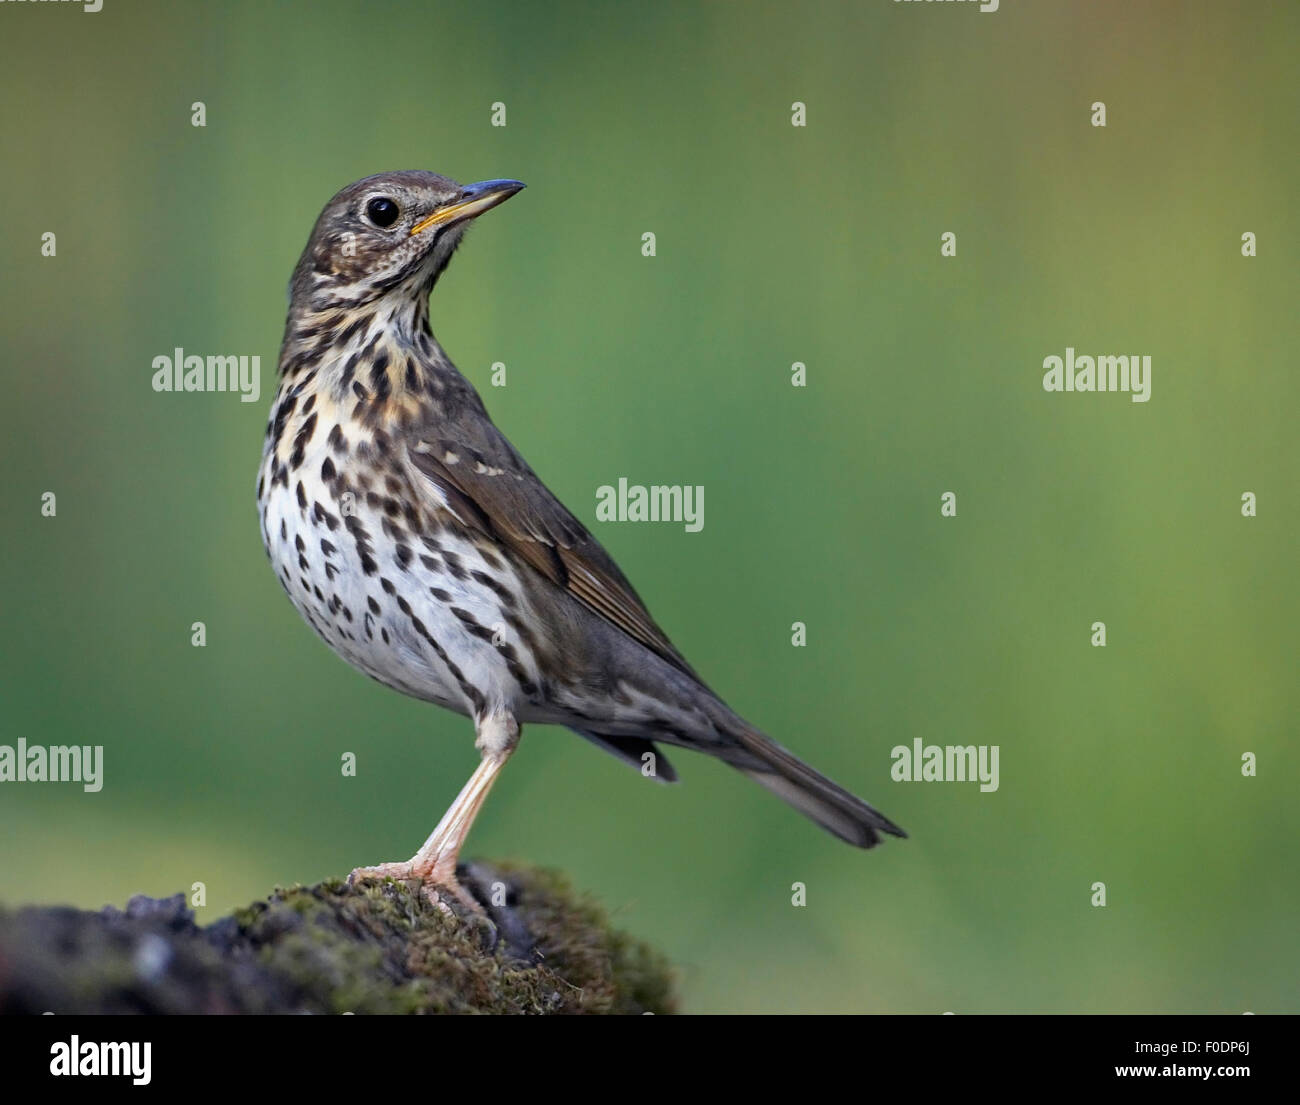 Song Thrush (Turdus philomelos) perched, Pusztaszer, Hungary, May 2008 - Stock Image